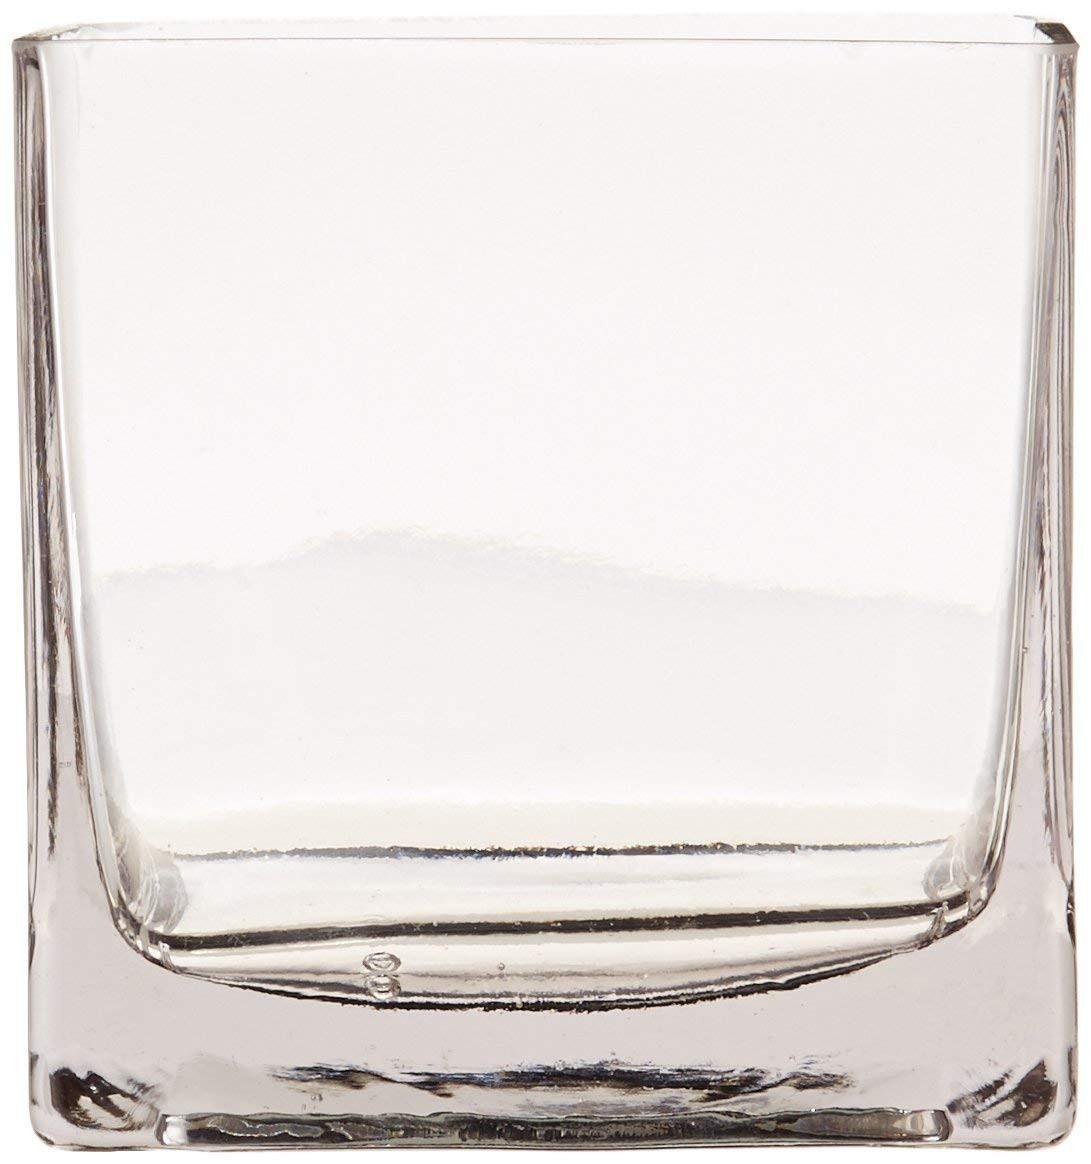 Glass Bubble Wall Vase Of Buy Cys Excel 12pc Clear Square Glass Vase Cube 5 Inch 5 X 5 X 5 Inside Buy Cys Excel 12pc Clear Square Glass Vase Cube 5 Inch 5 X 5 X 5 Twelve Vases Online at Low Prices In India Amazon In